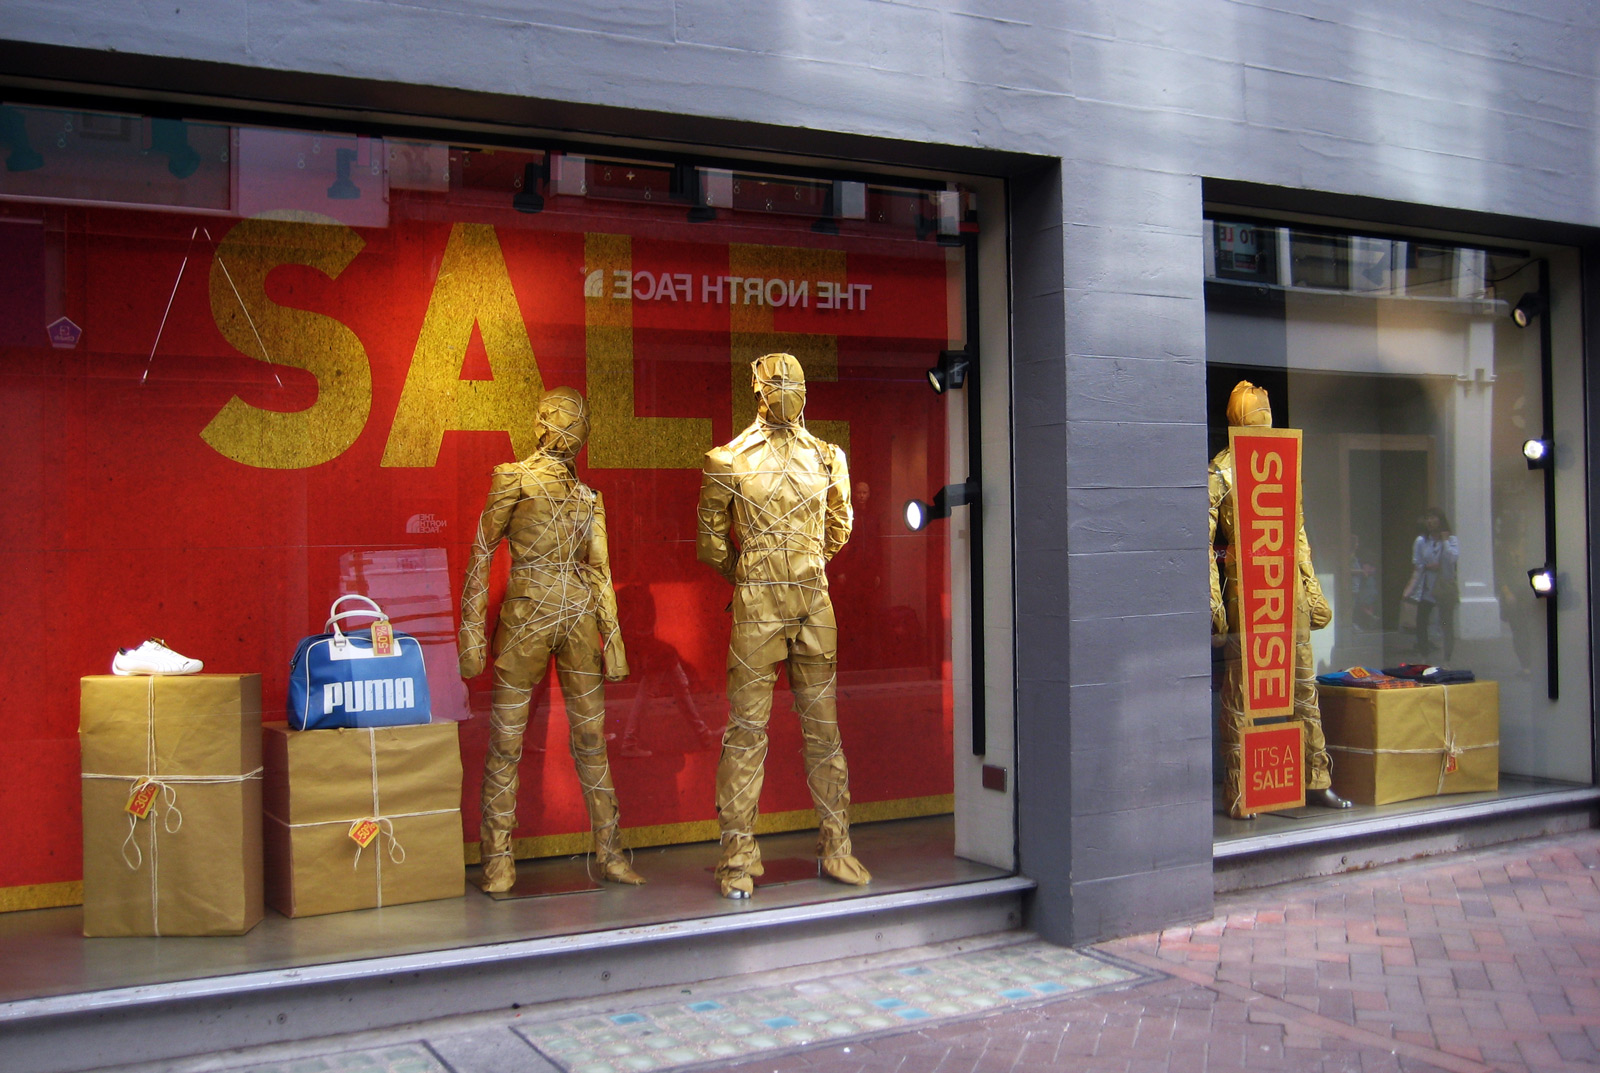 Puma has sales and a wrapped box plus a wrapped mannequin for autumn window display.